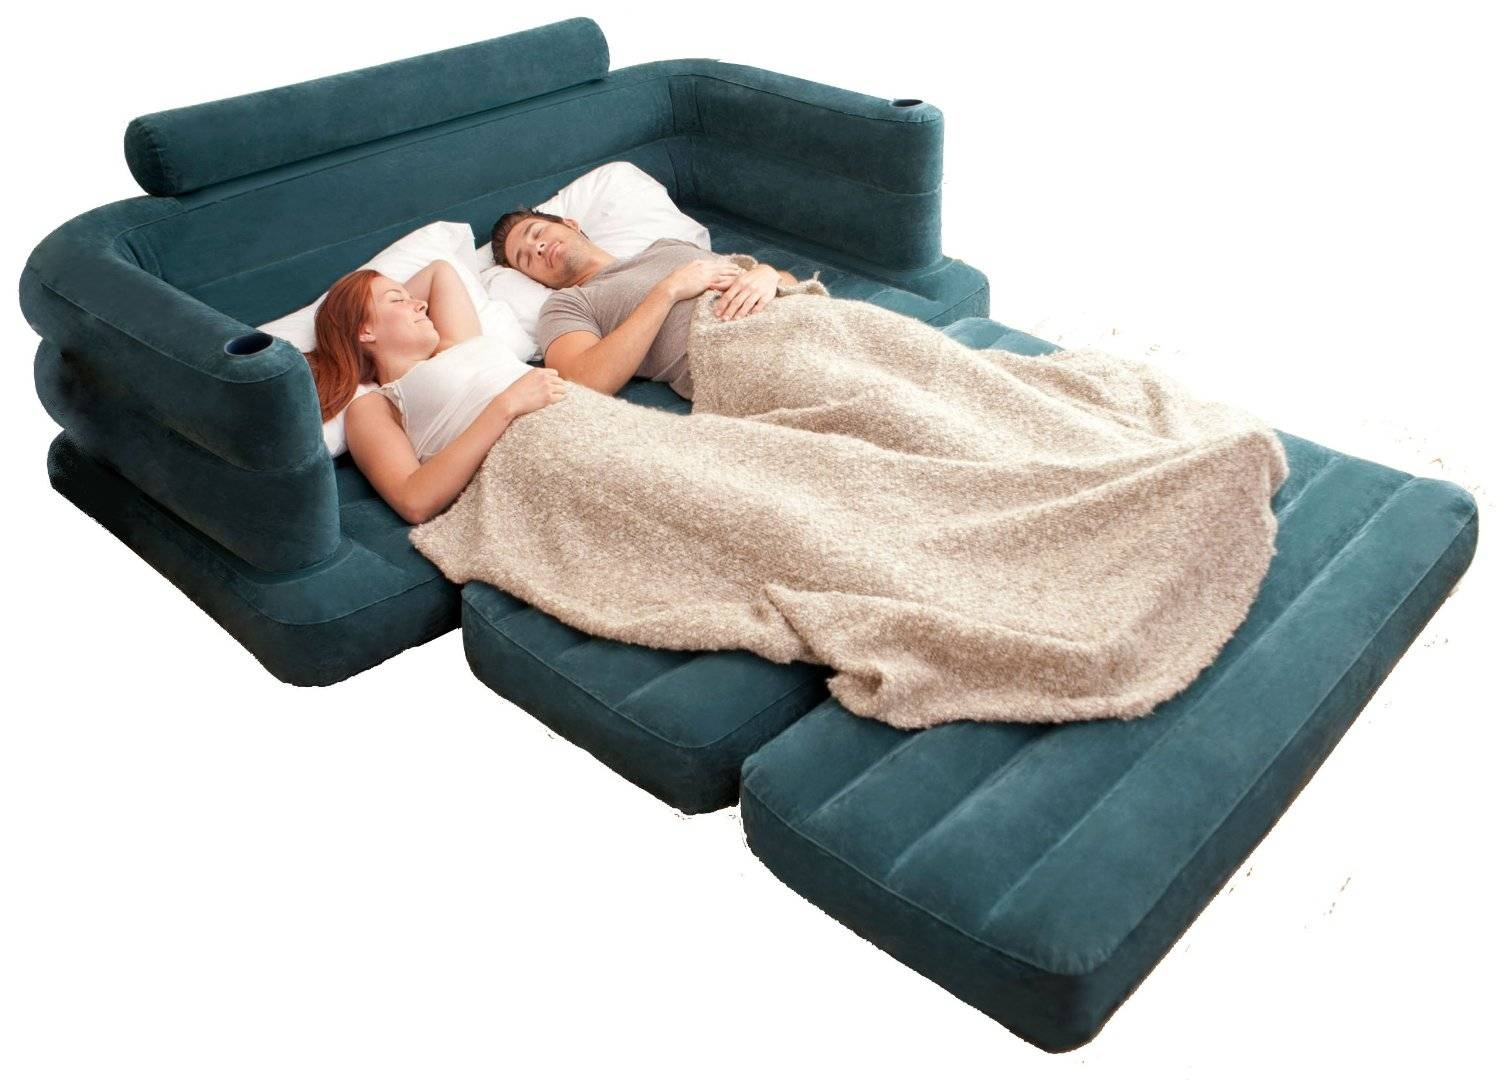 Intex Inflatable Pull Out Sofa Mattress Sleeper Queen 68566Ep Bed for Intex Inflatable Pull Out Sofas (Image 7 of 15)